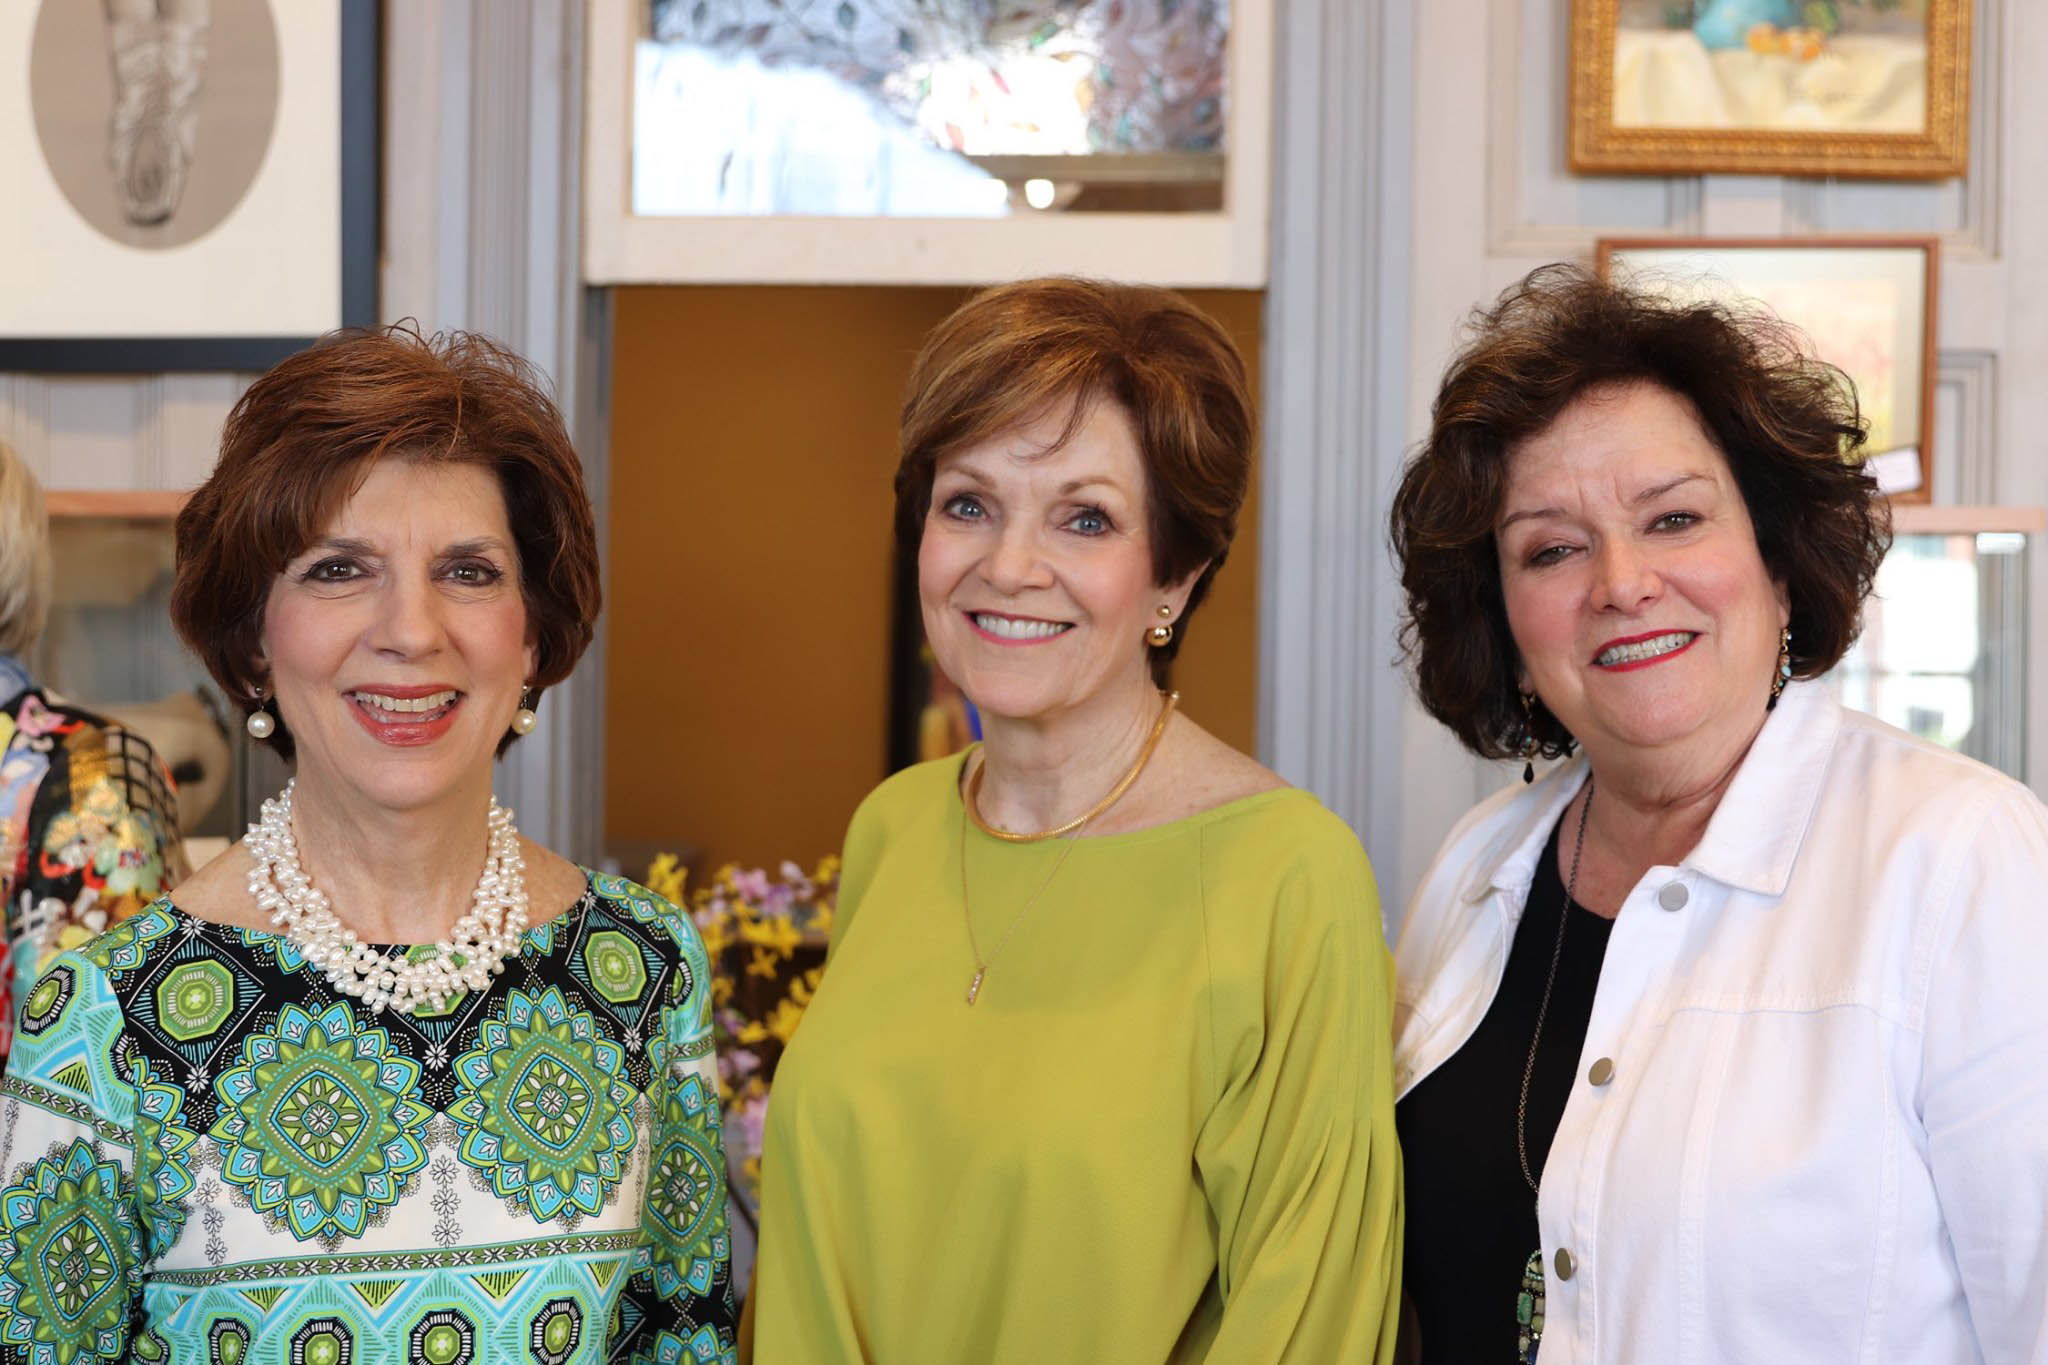 Junie Young, Linda Grace and Ann Johnson